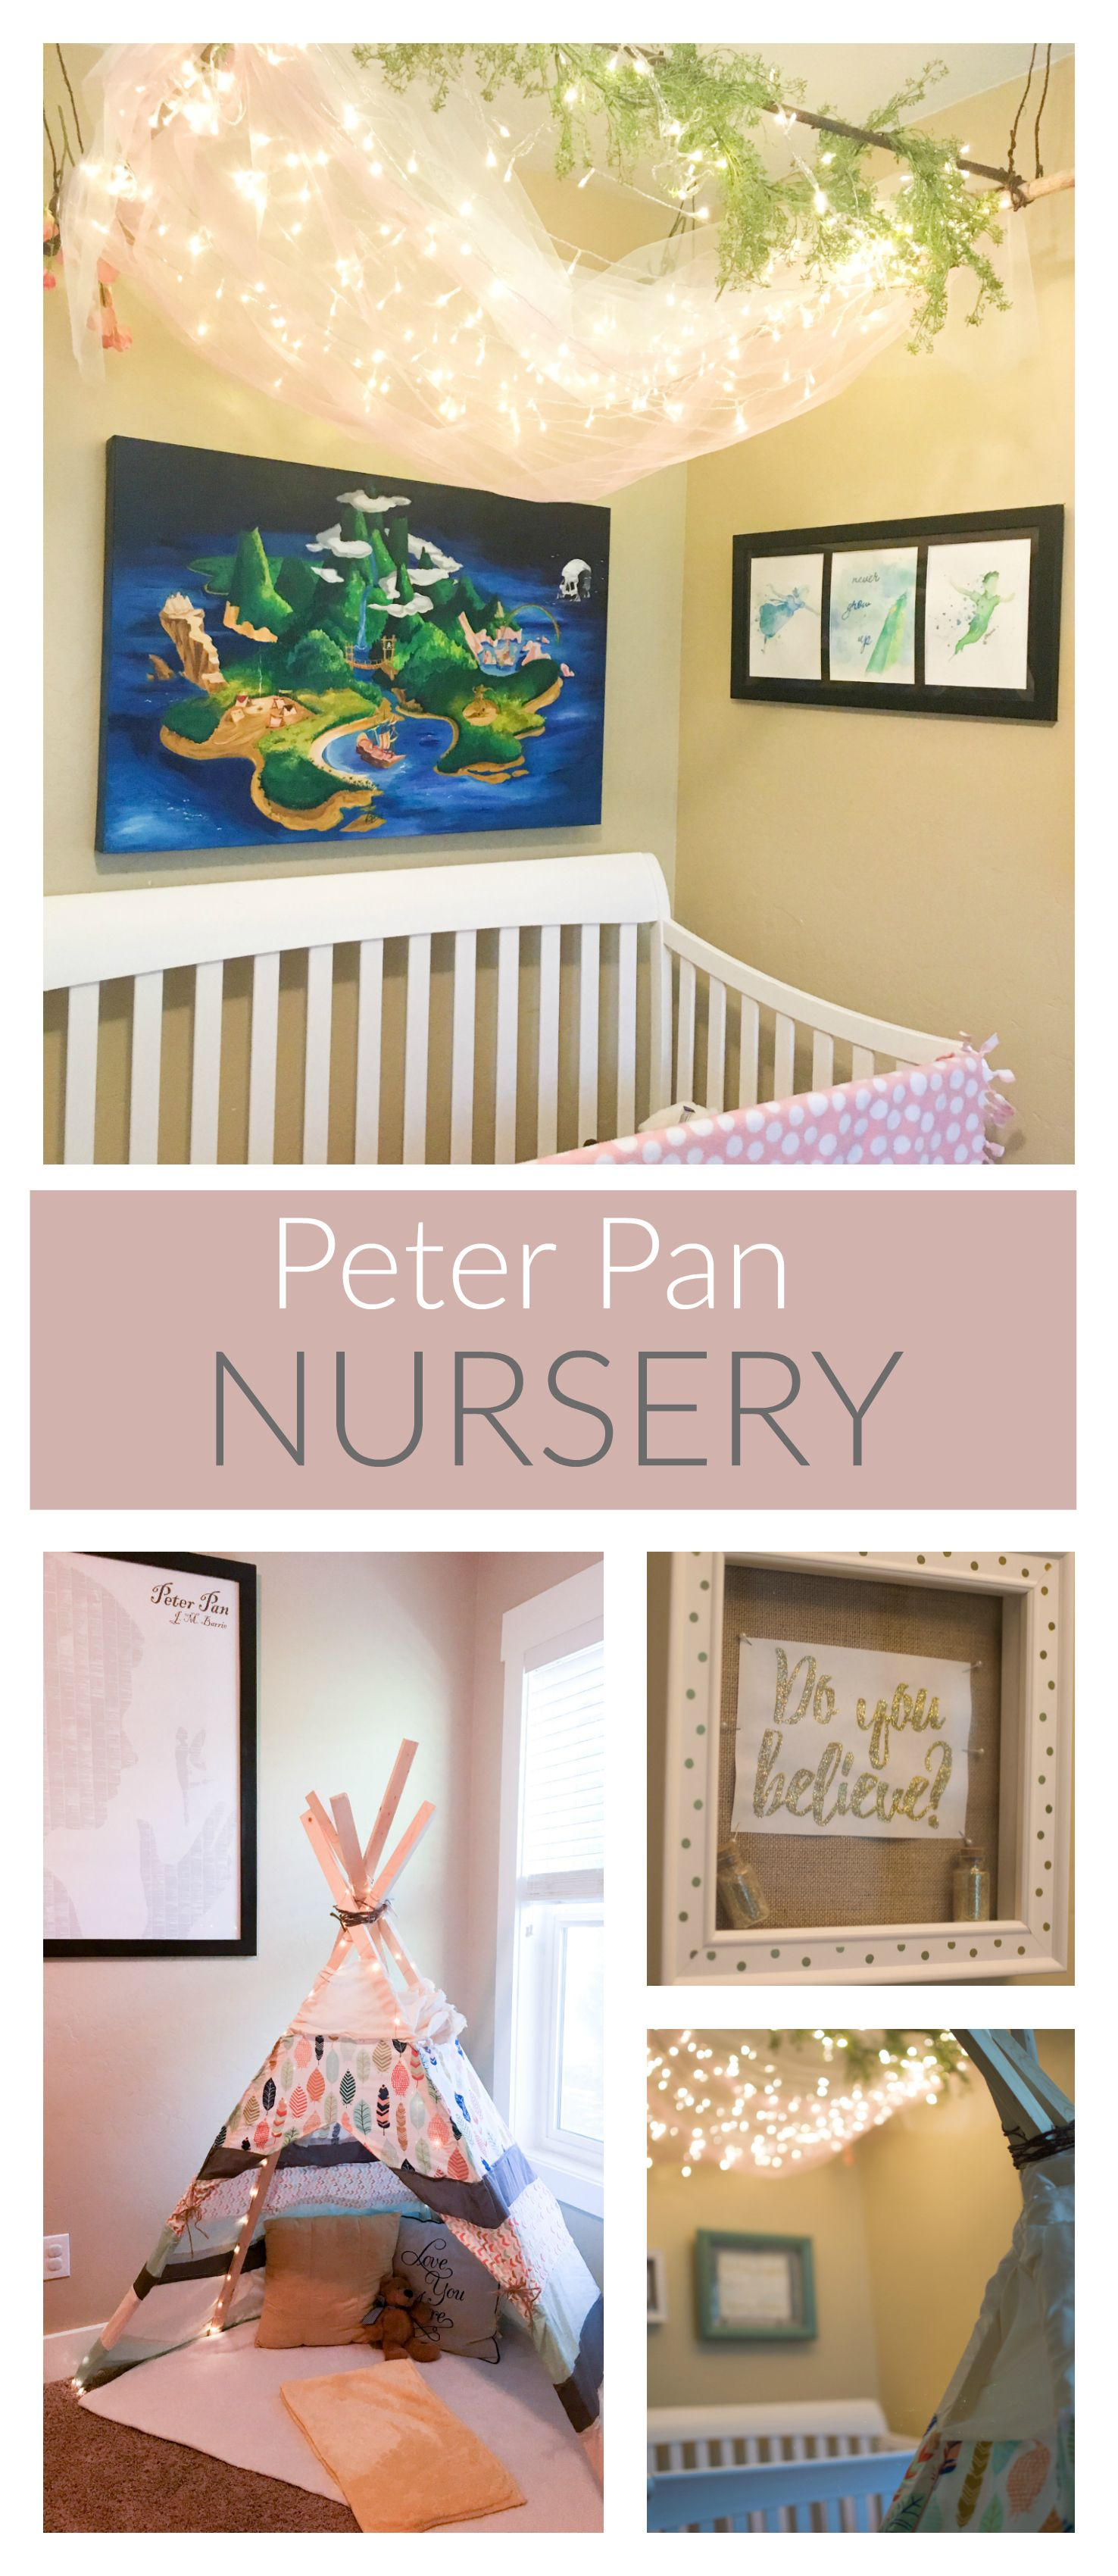 Peter Pan Nursery Disney Baby Rooms Nursery Room Boy Baby Boy Room Nursery